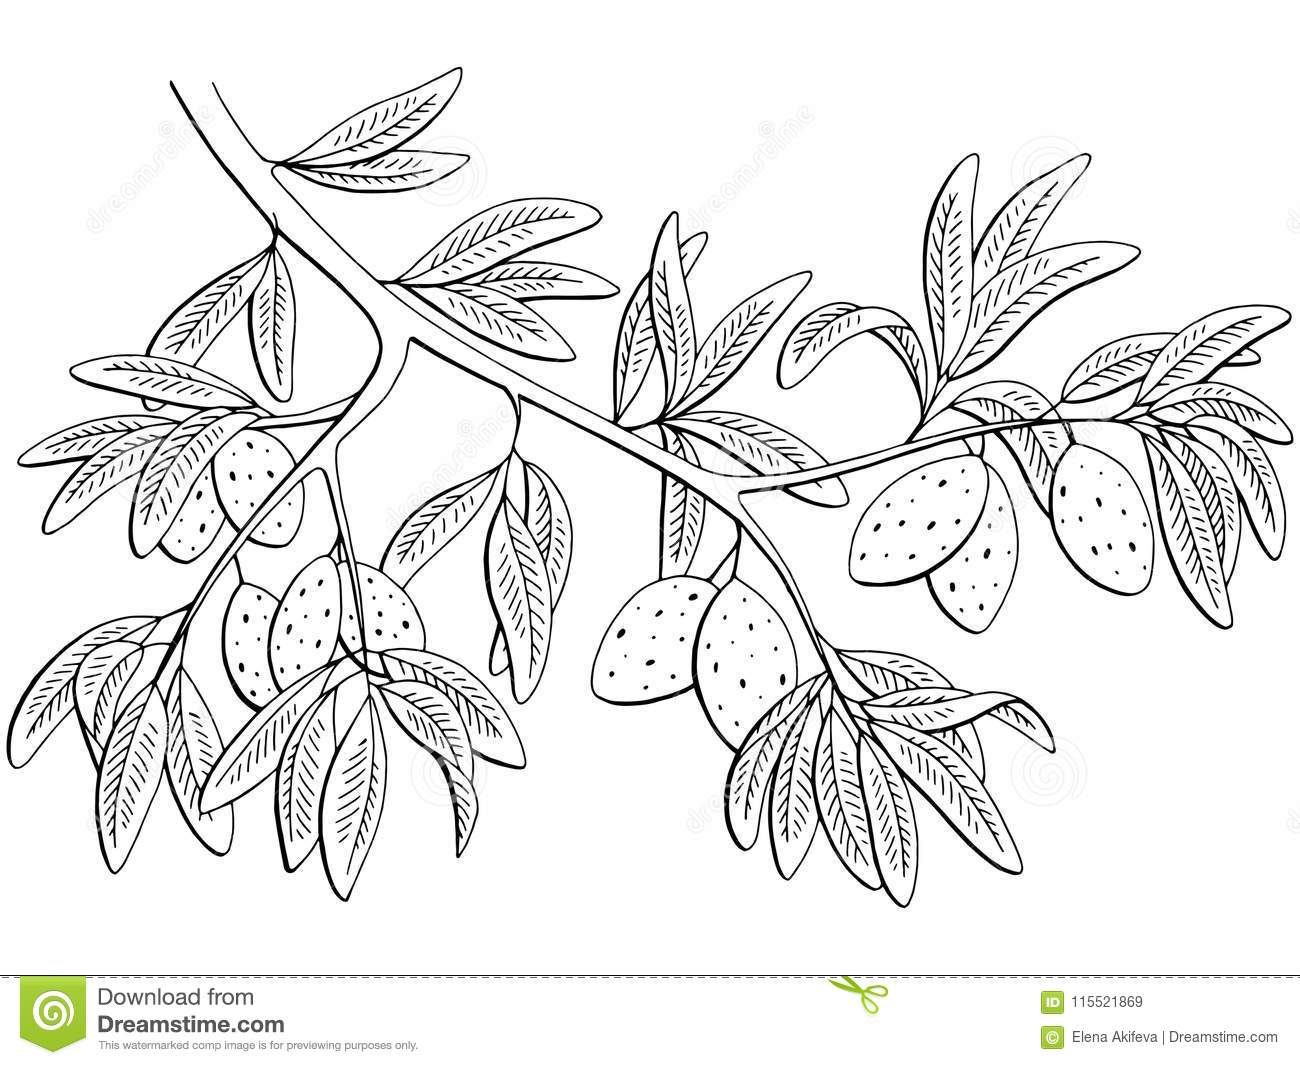 Almond nut graphic black white isolated branch sketch illustration vector